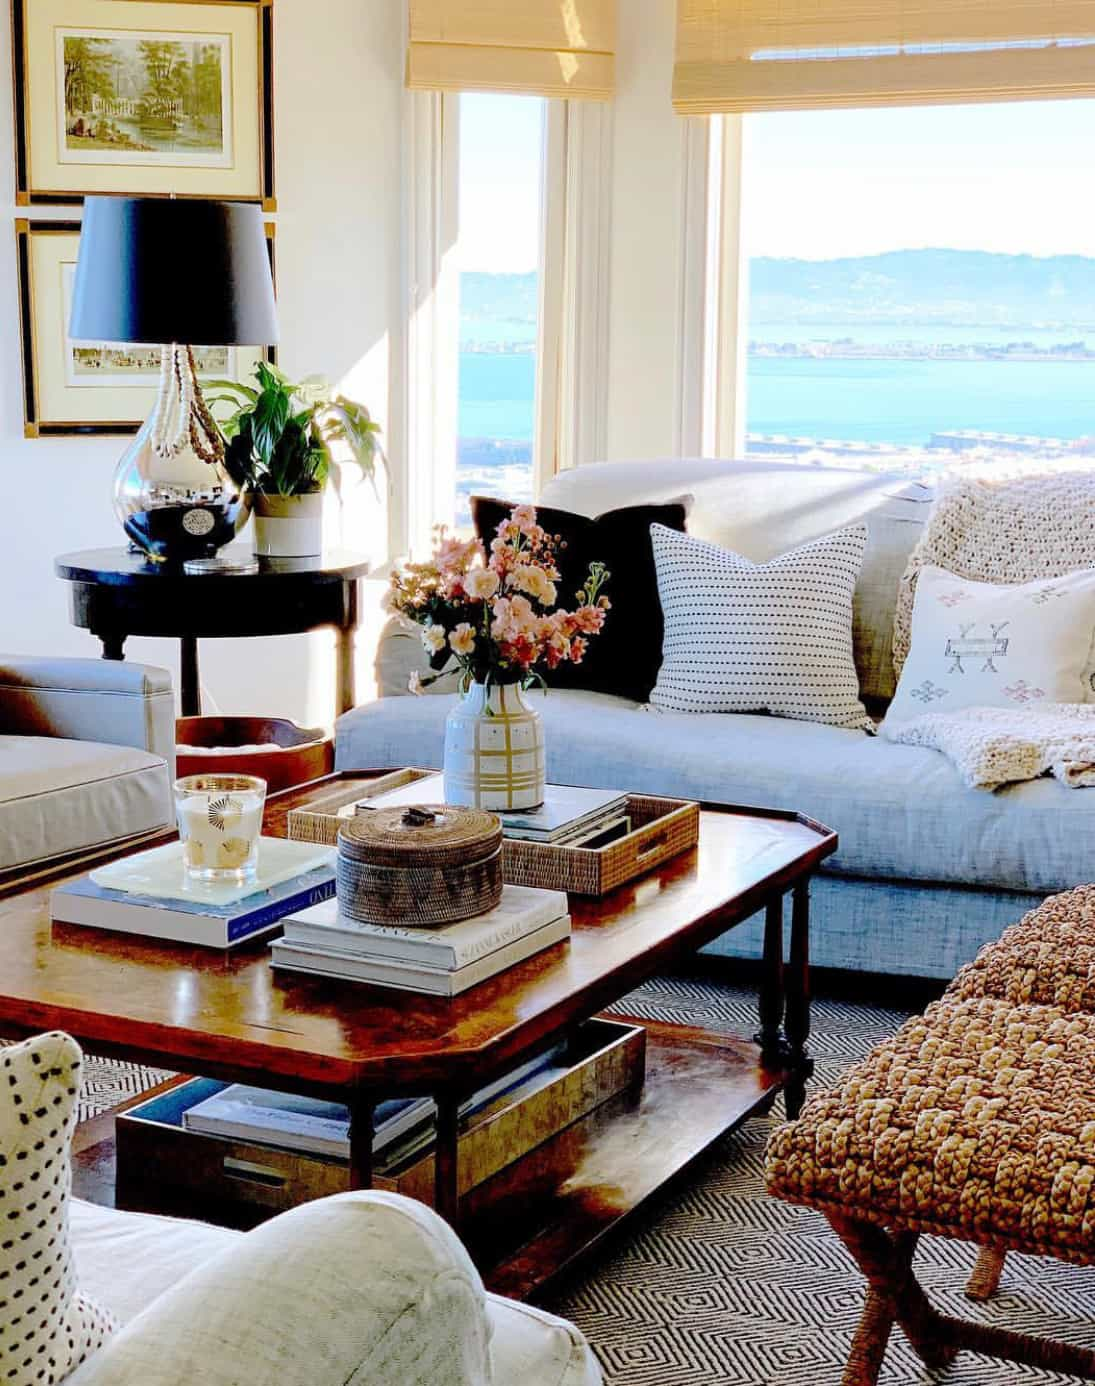 mary ann's living room with view of the bay